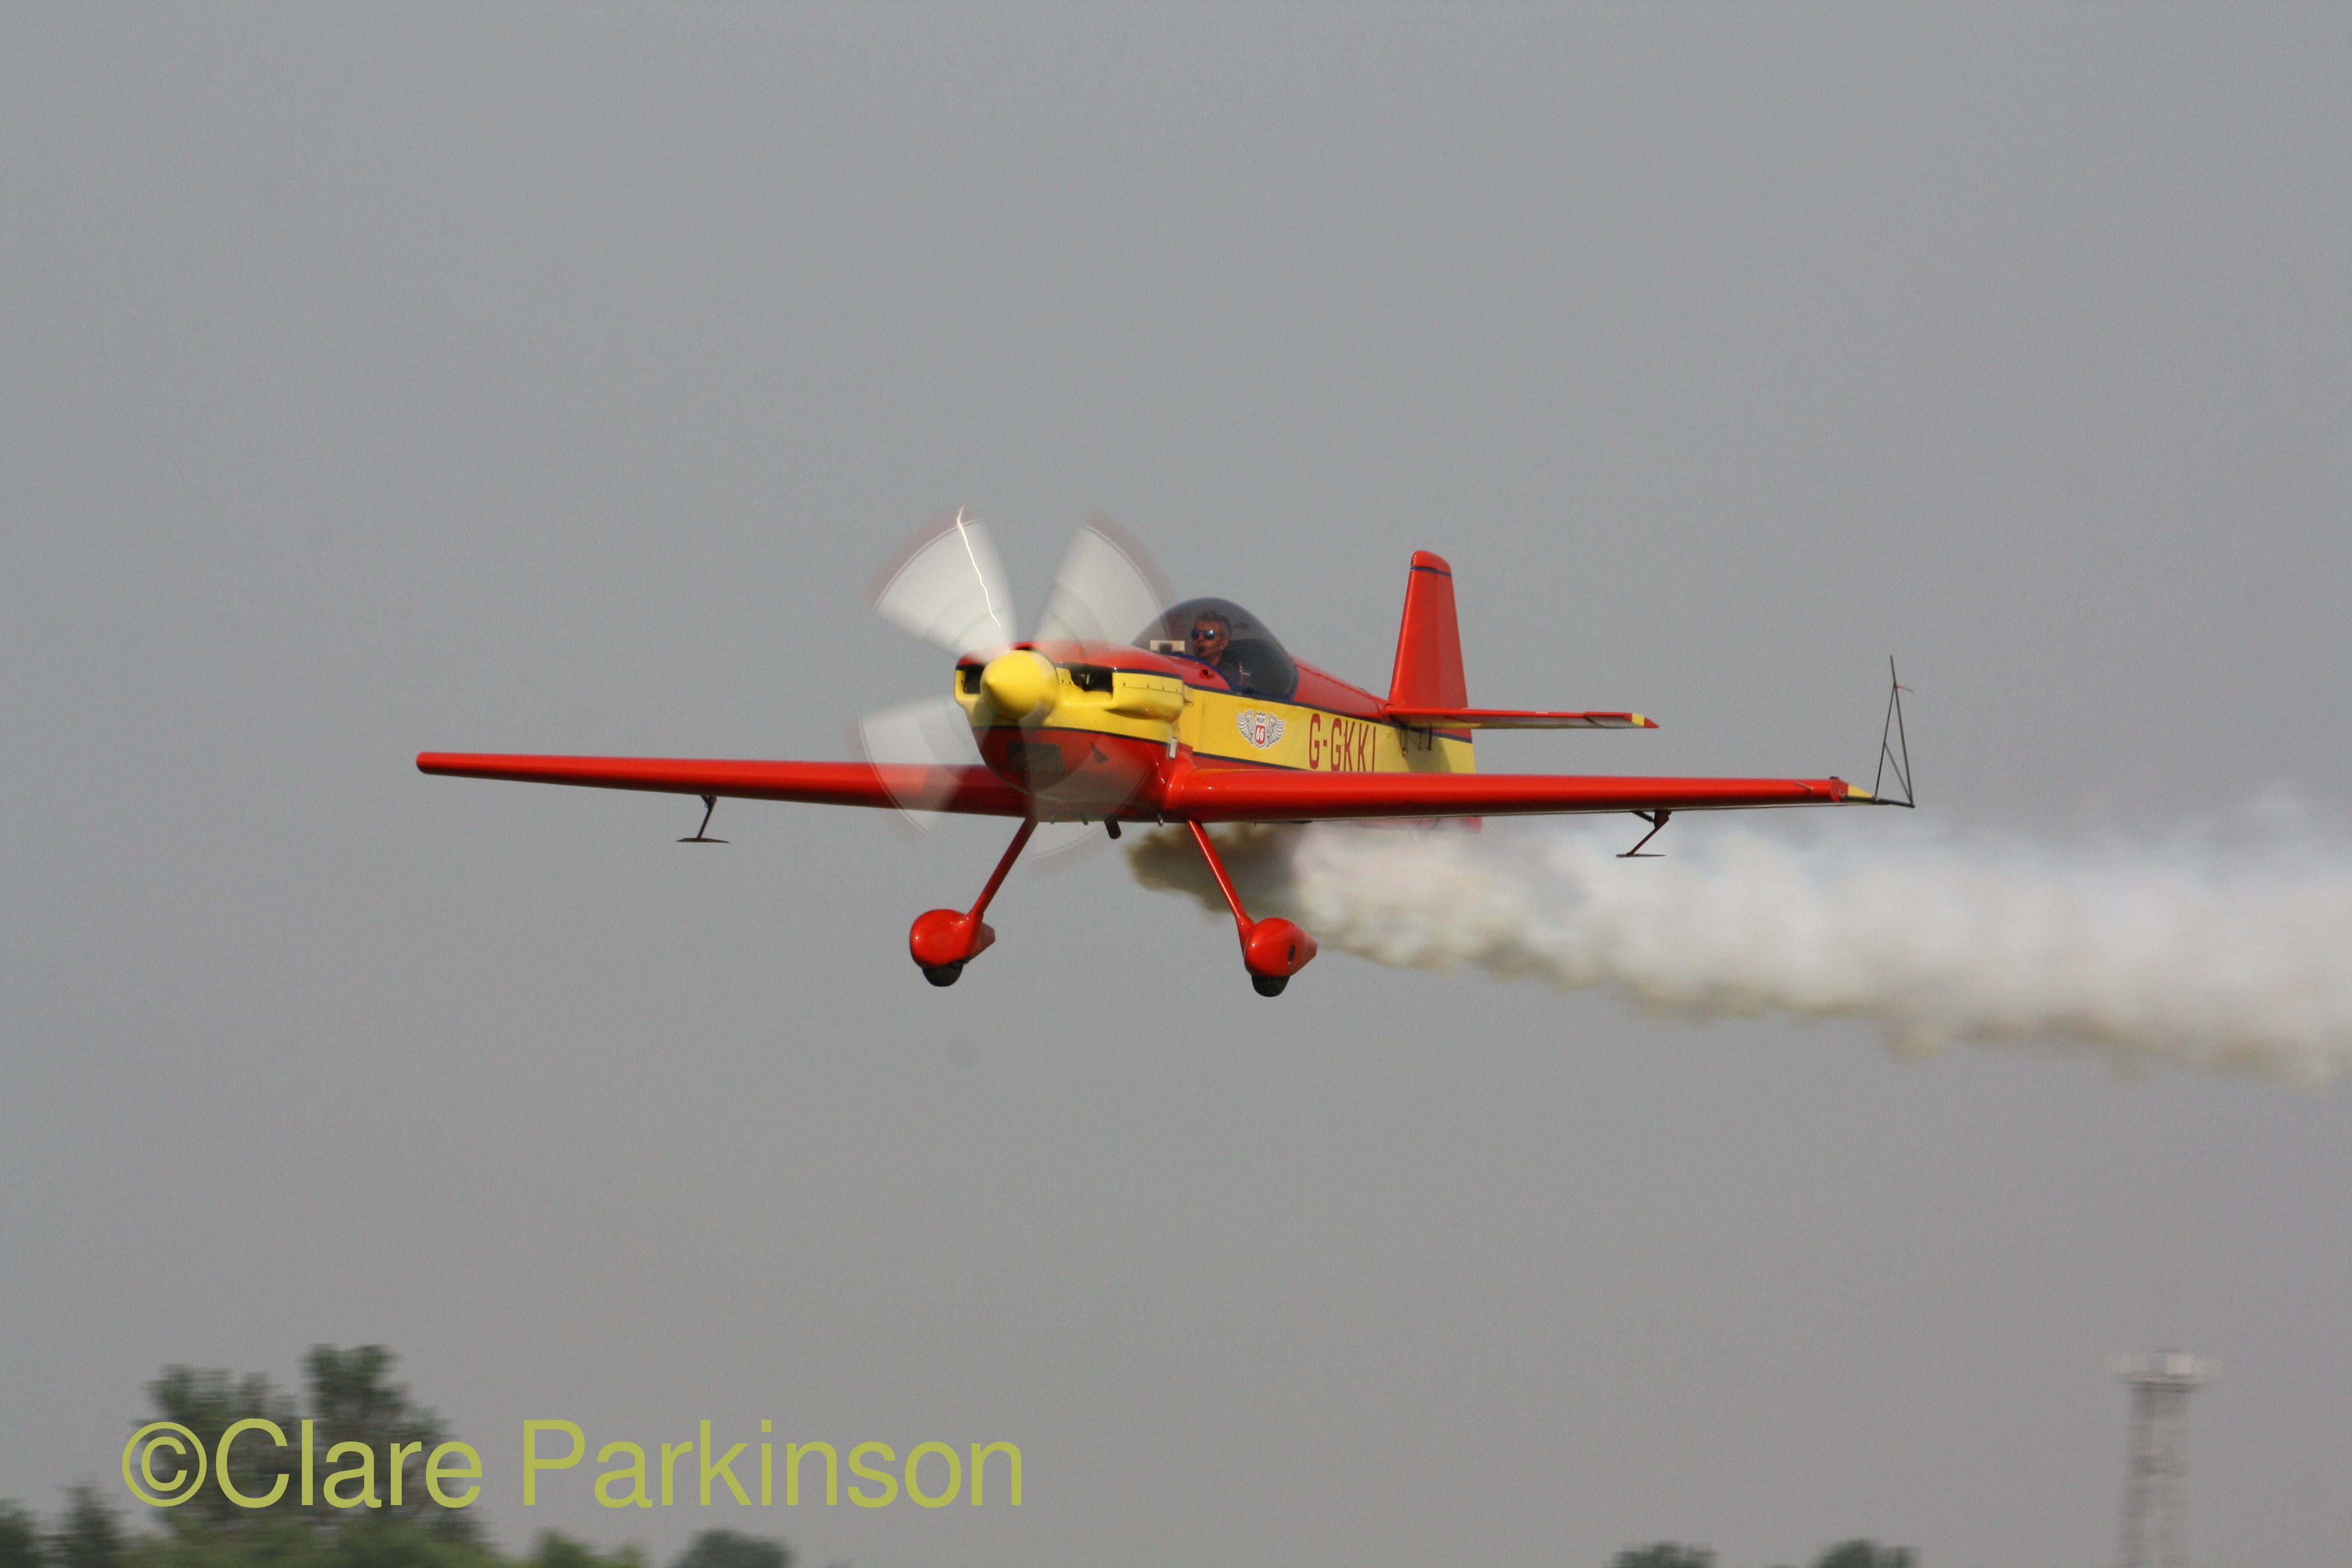 Zhengzhou Air Show through the eyes of Clare Parkinson – Mark Jefferies